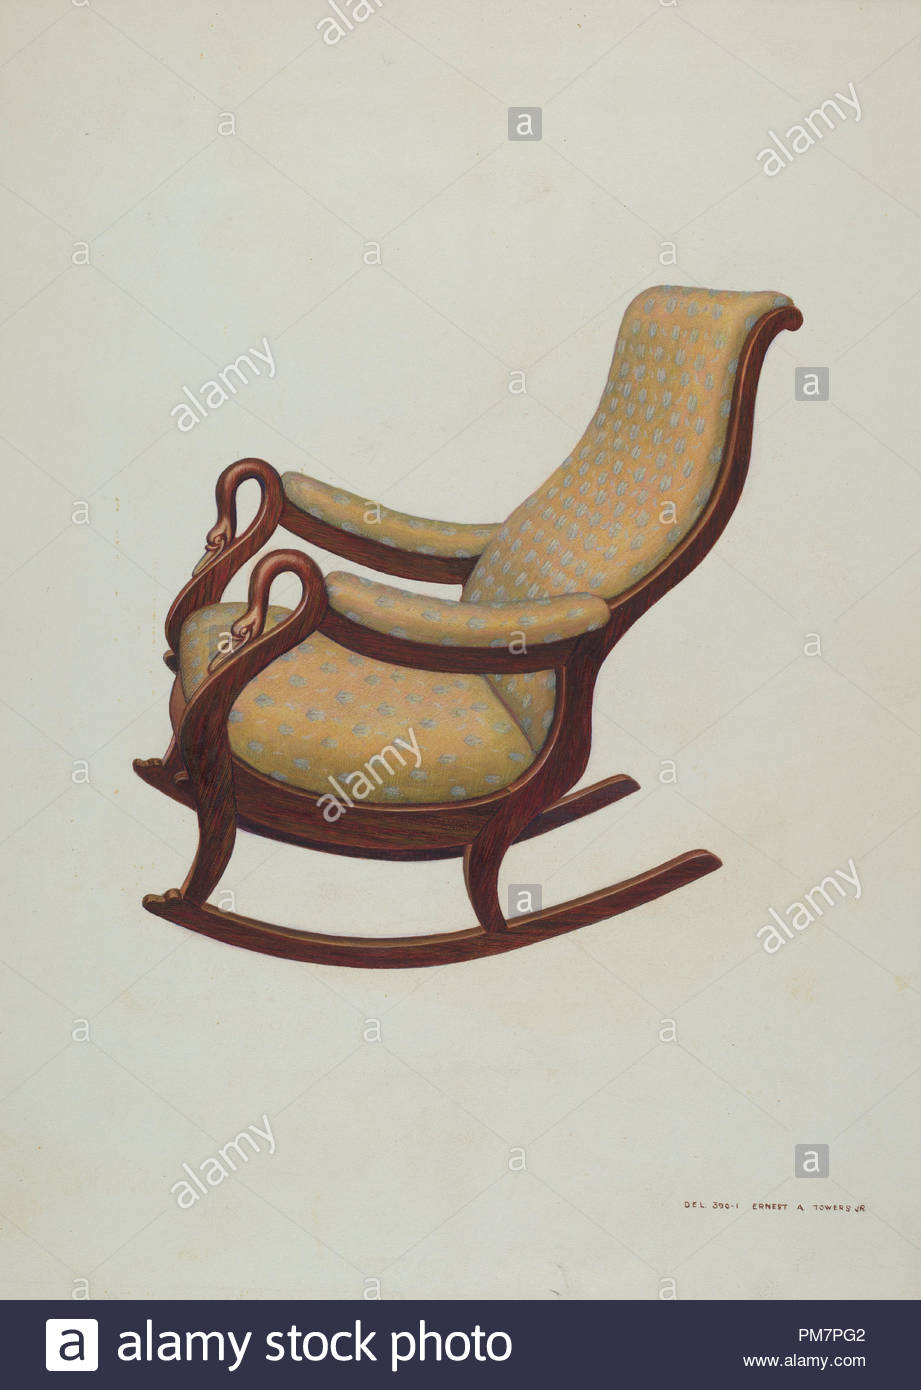 rocking chair rockers perfect craigslist dated c 1938 dimensions overall 35 9 x 25 8 cm 14 1 10 3 16 in original iad object 40 high 23 wide